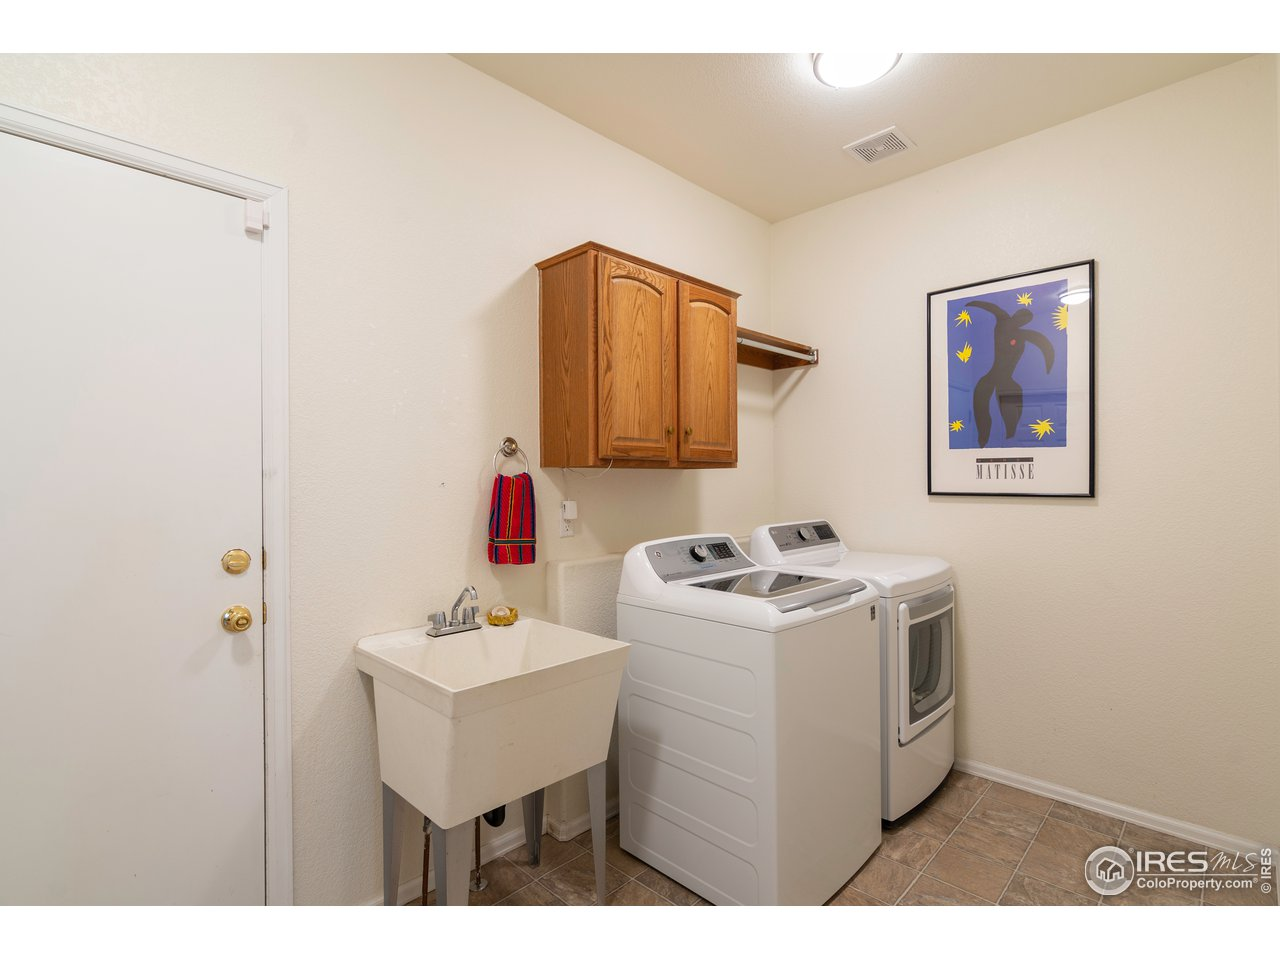 laundry room/ drop zone off of garage- washer and dryer included